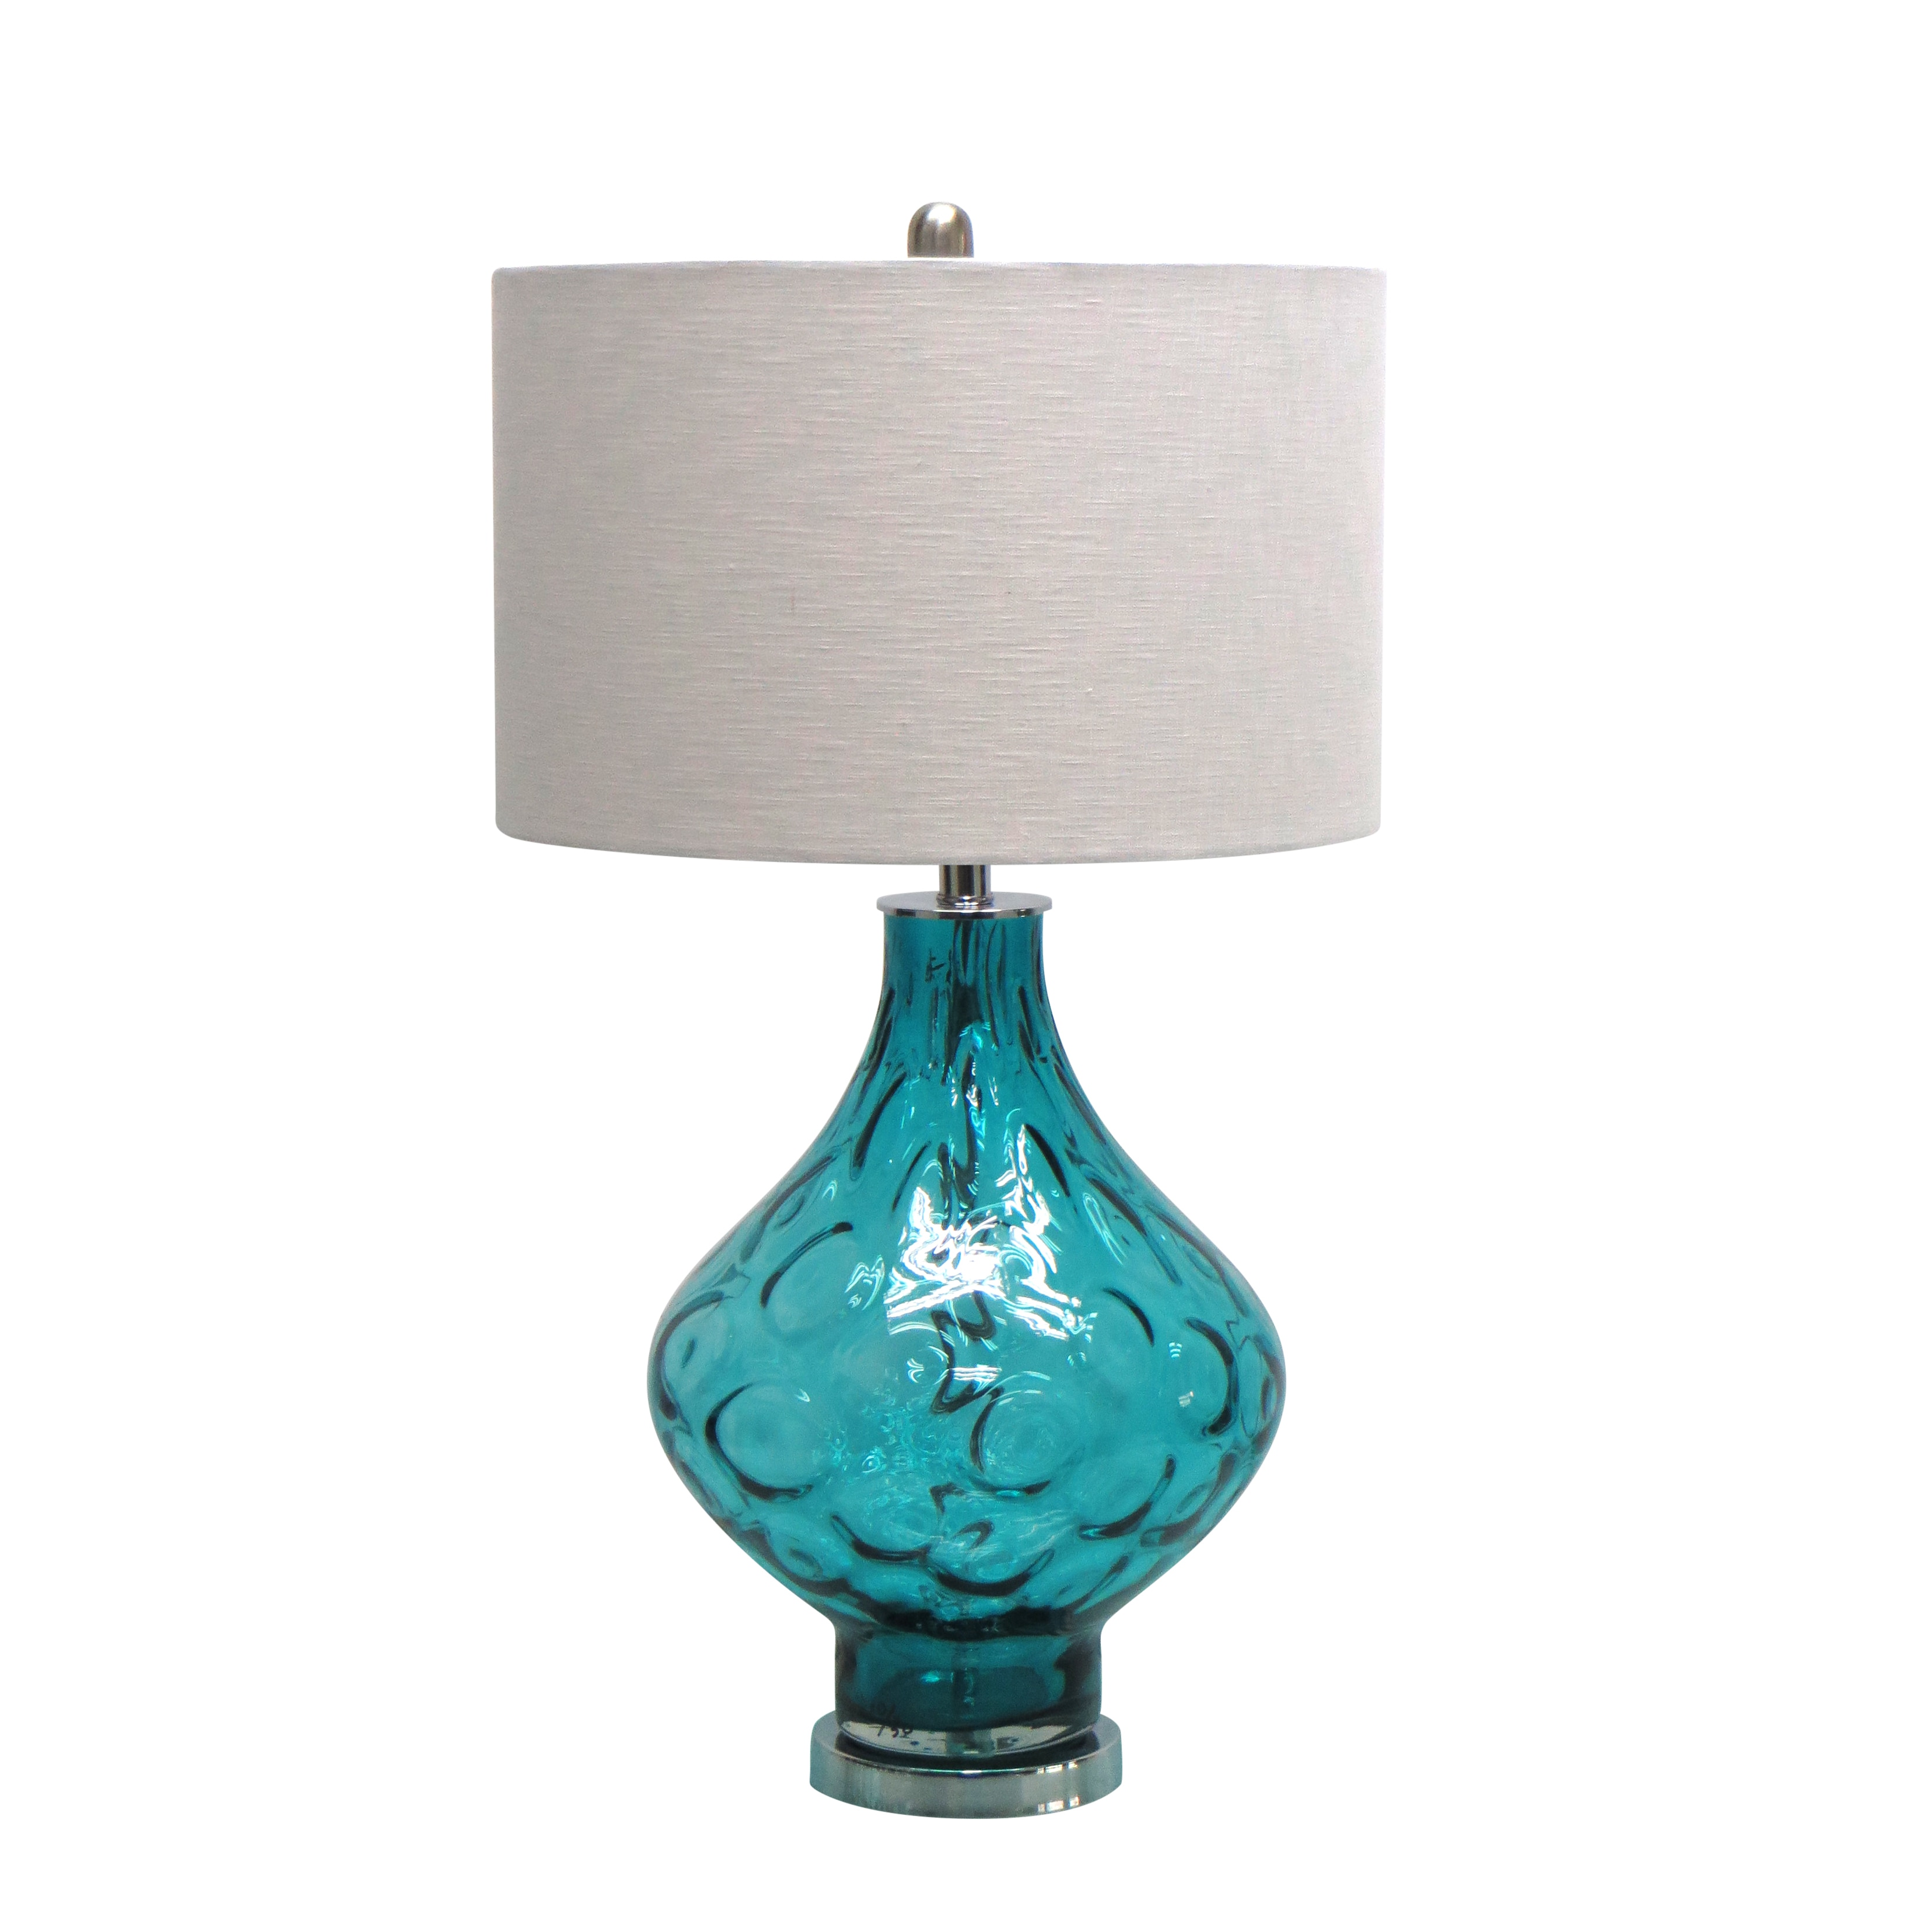 Shop 26 25 Inch Turquoise Glass Table Lamp Overstock 14294589